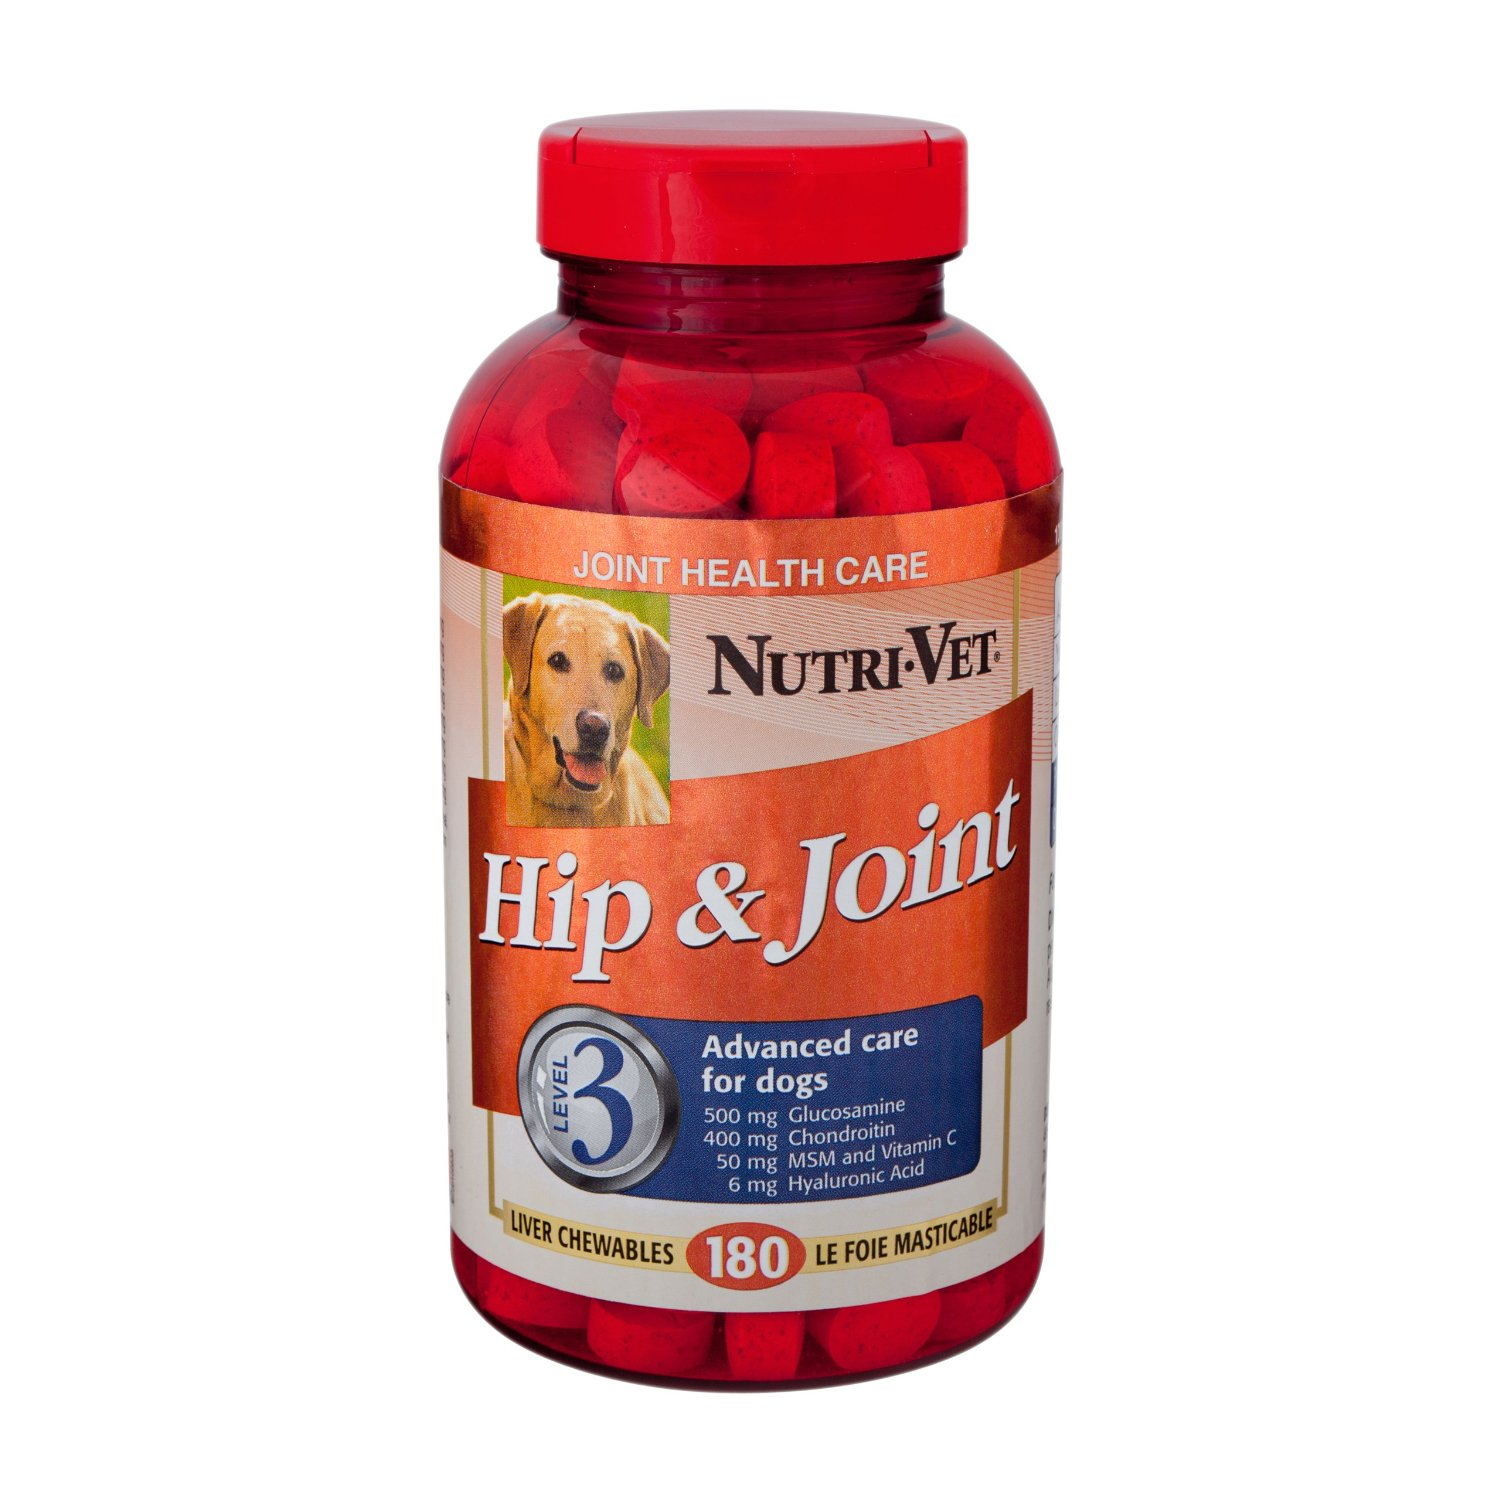 Nutri-Vet Hip and Joint Level 3 Chewable Tablet for Dogs